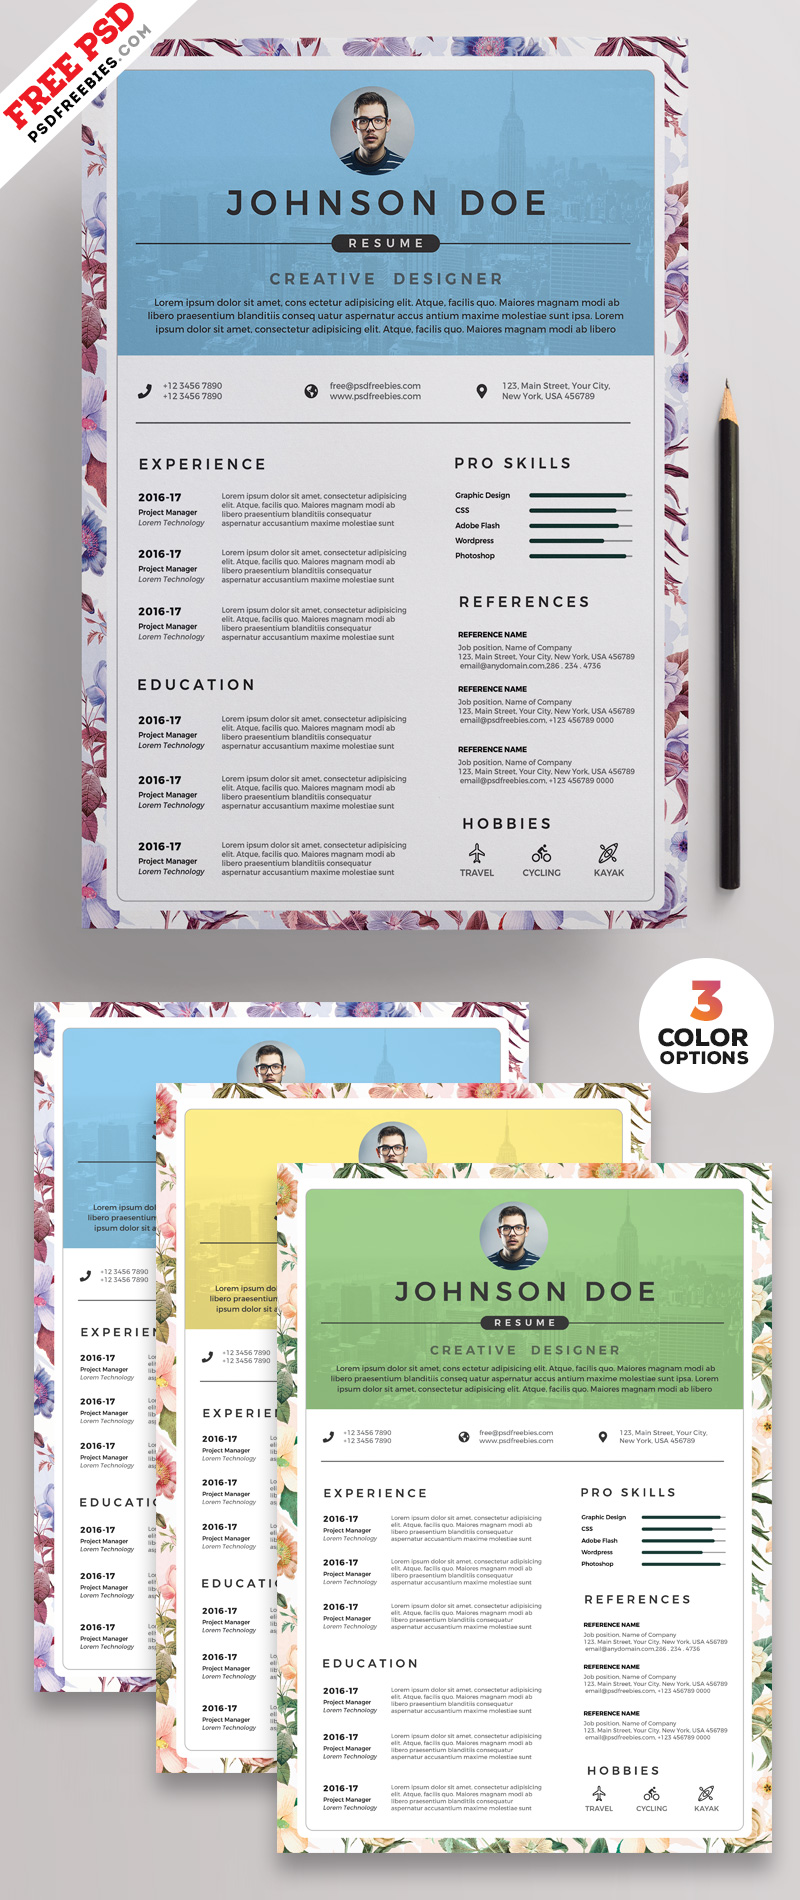 PSD Clean Resume CV Design Templates